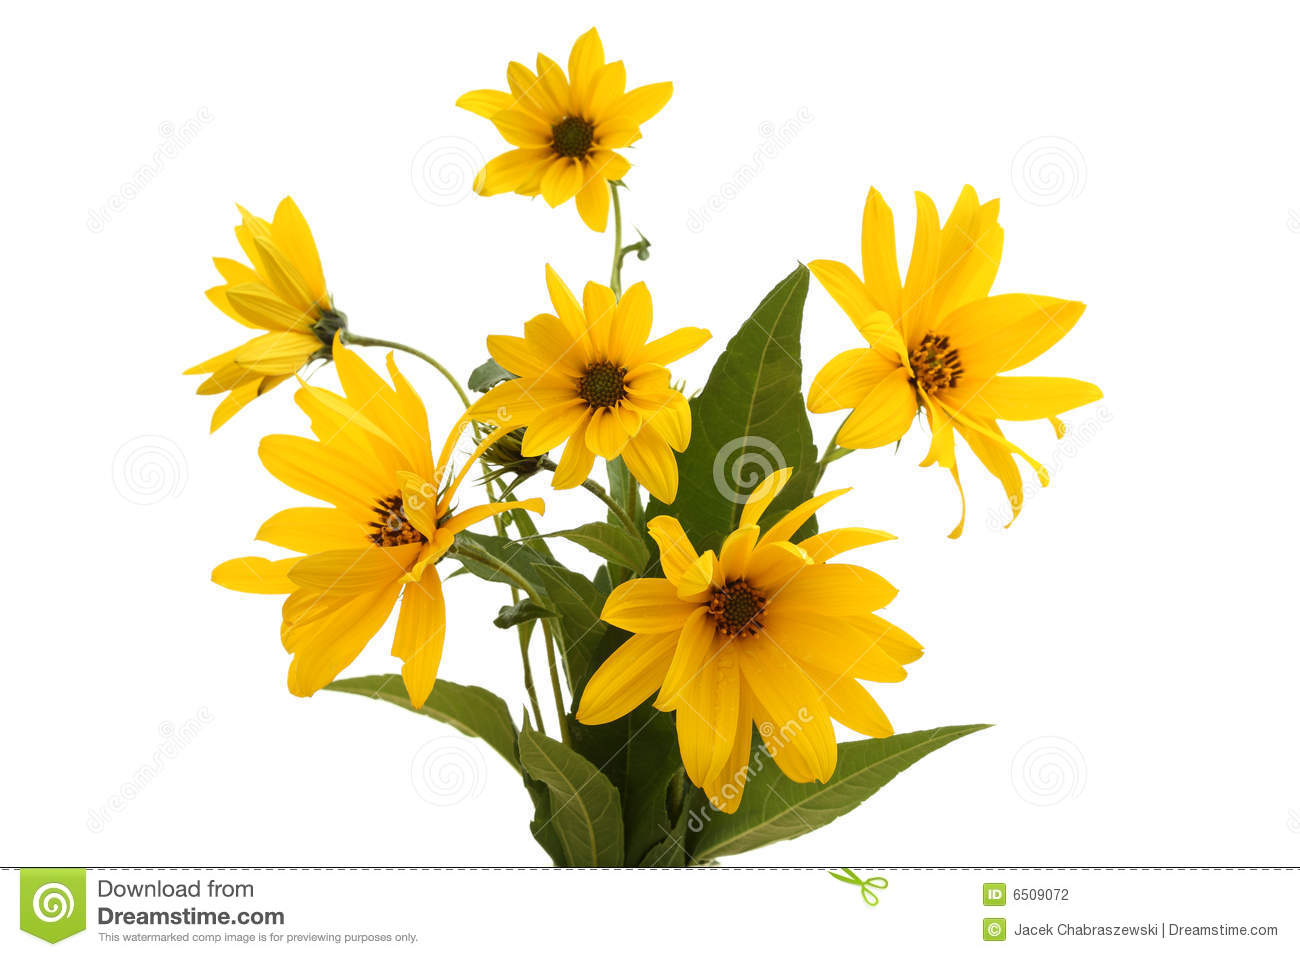 Bunch of flowers images download jpg royalty free stock Bunch Of Flowers Stock Photography - Image: 6509072 jpg royalty free stock